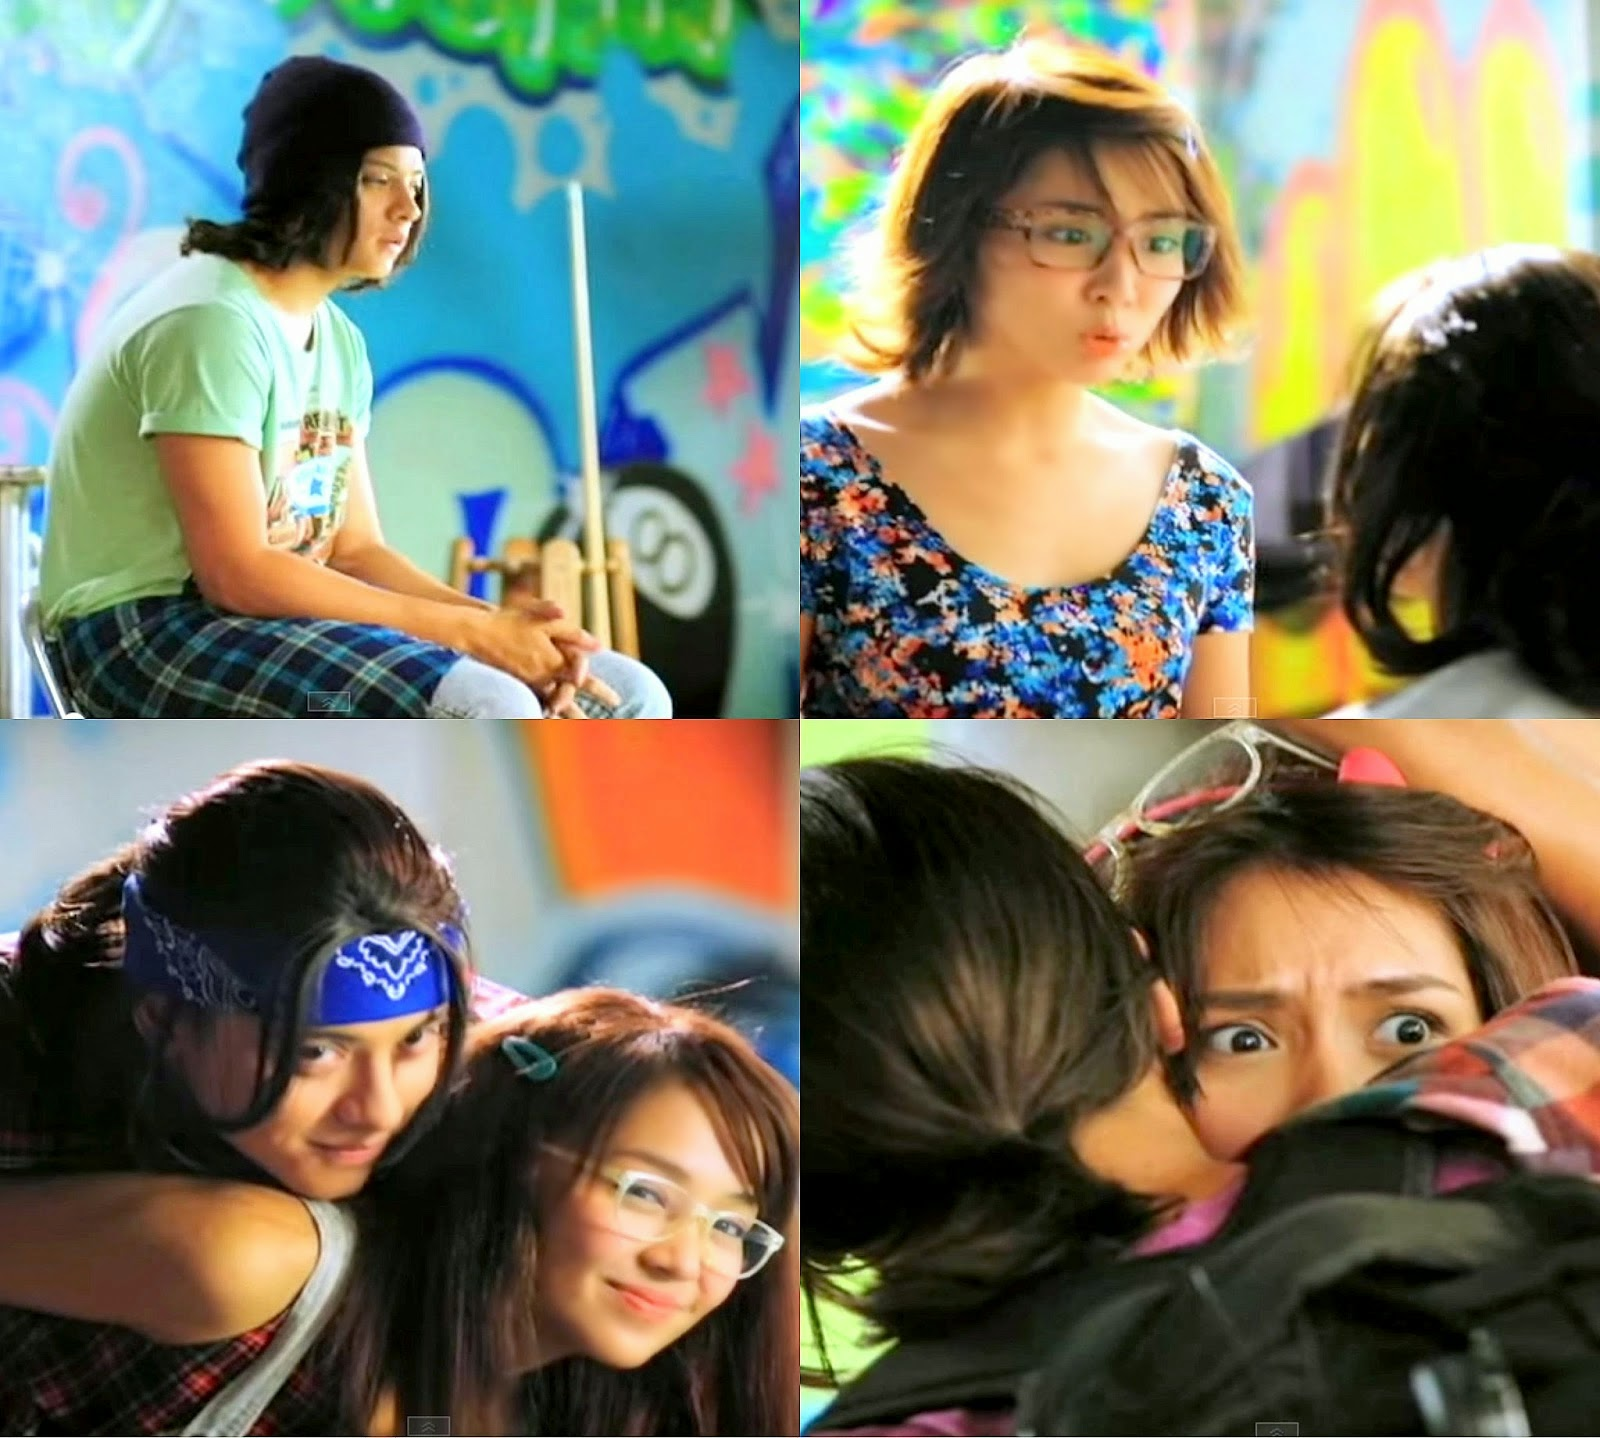 She's Dating the Gangster (Pinoy) | AniMangá House